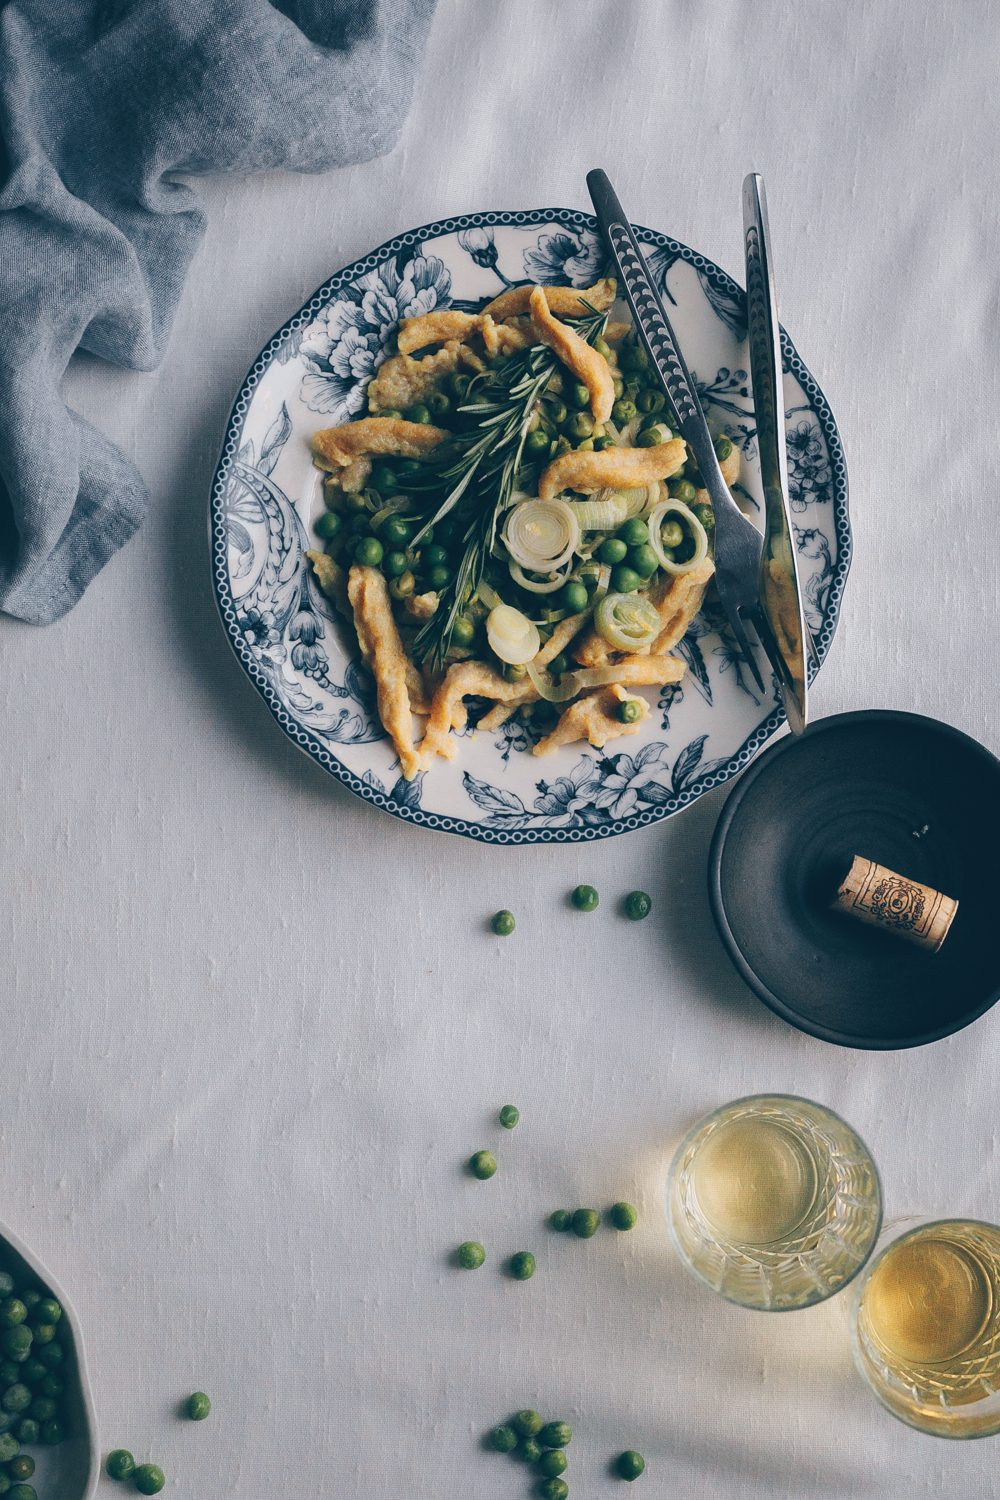 Spaetzle with Leek and Peas - A vegan recipe by Fanny the Foodie and Kati of black.white.vivid. - vegan recipe, vegane spätzle, vegan speatzle, vegan swiss food, swiss recipe, swiss cuisine, moody food photography, food photography, food styling, pasta, noodles, homemade spaetzle, homemade pasta